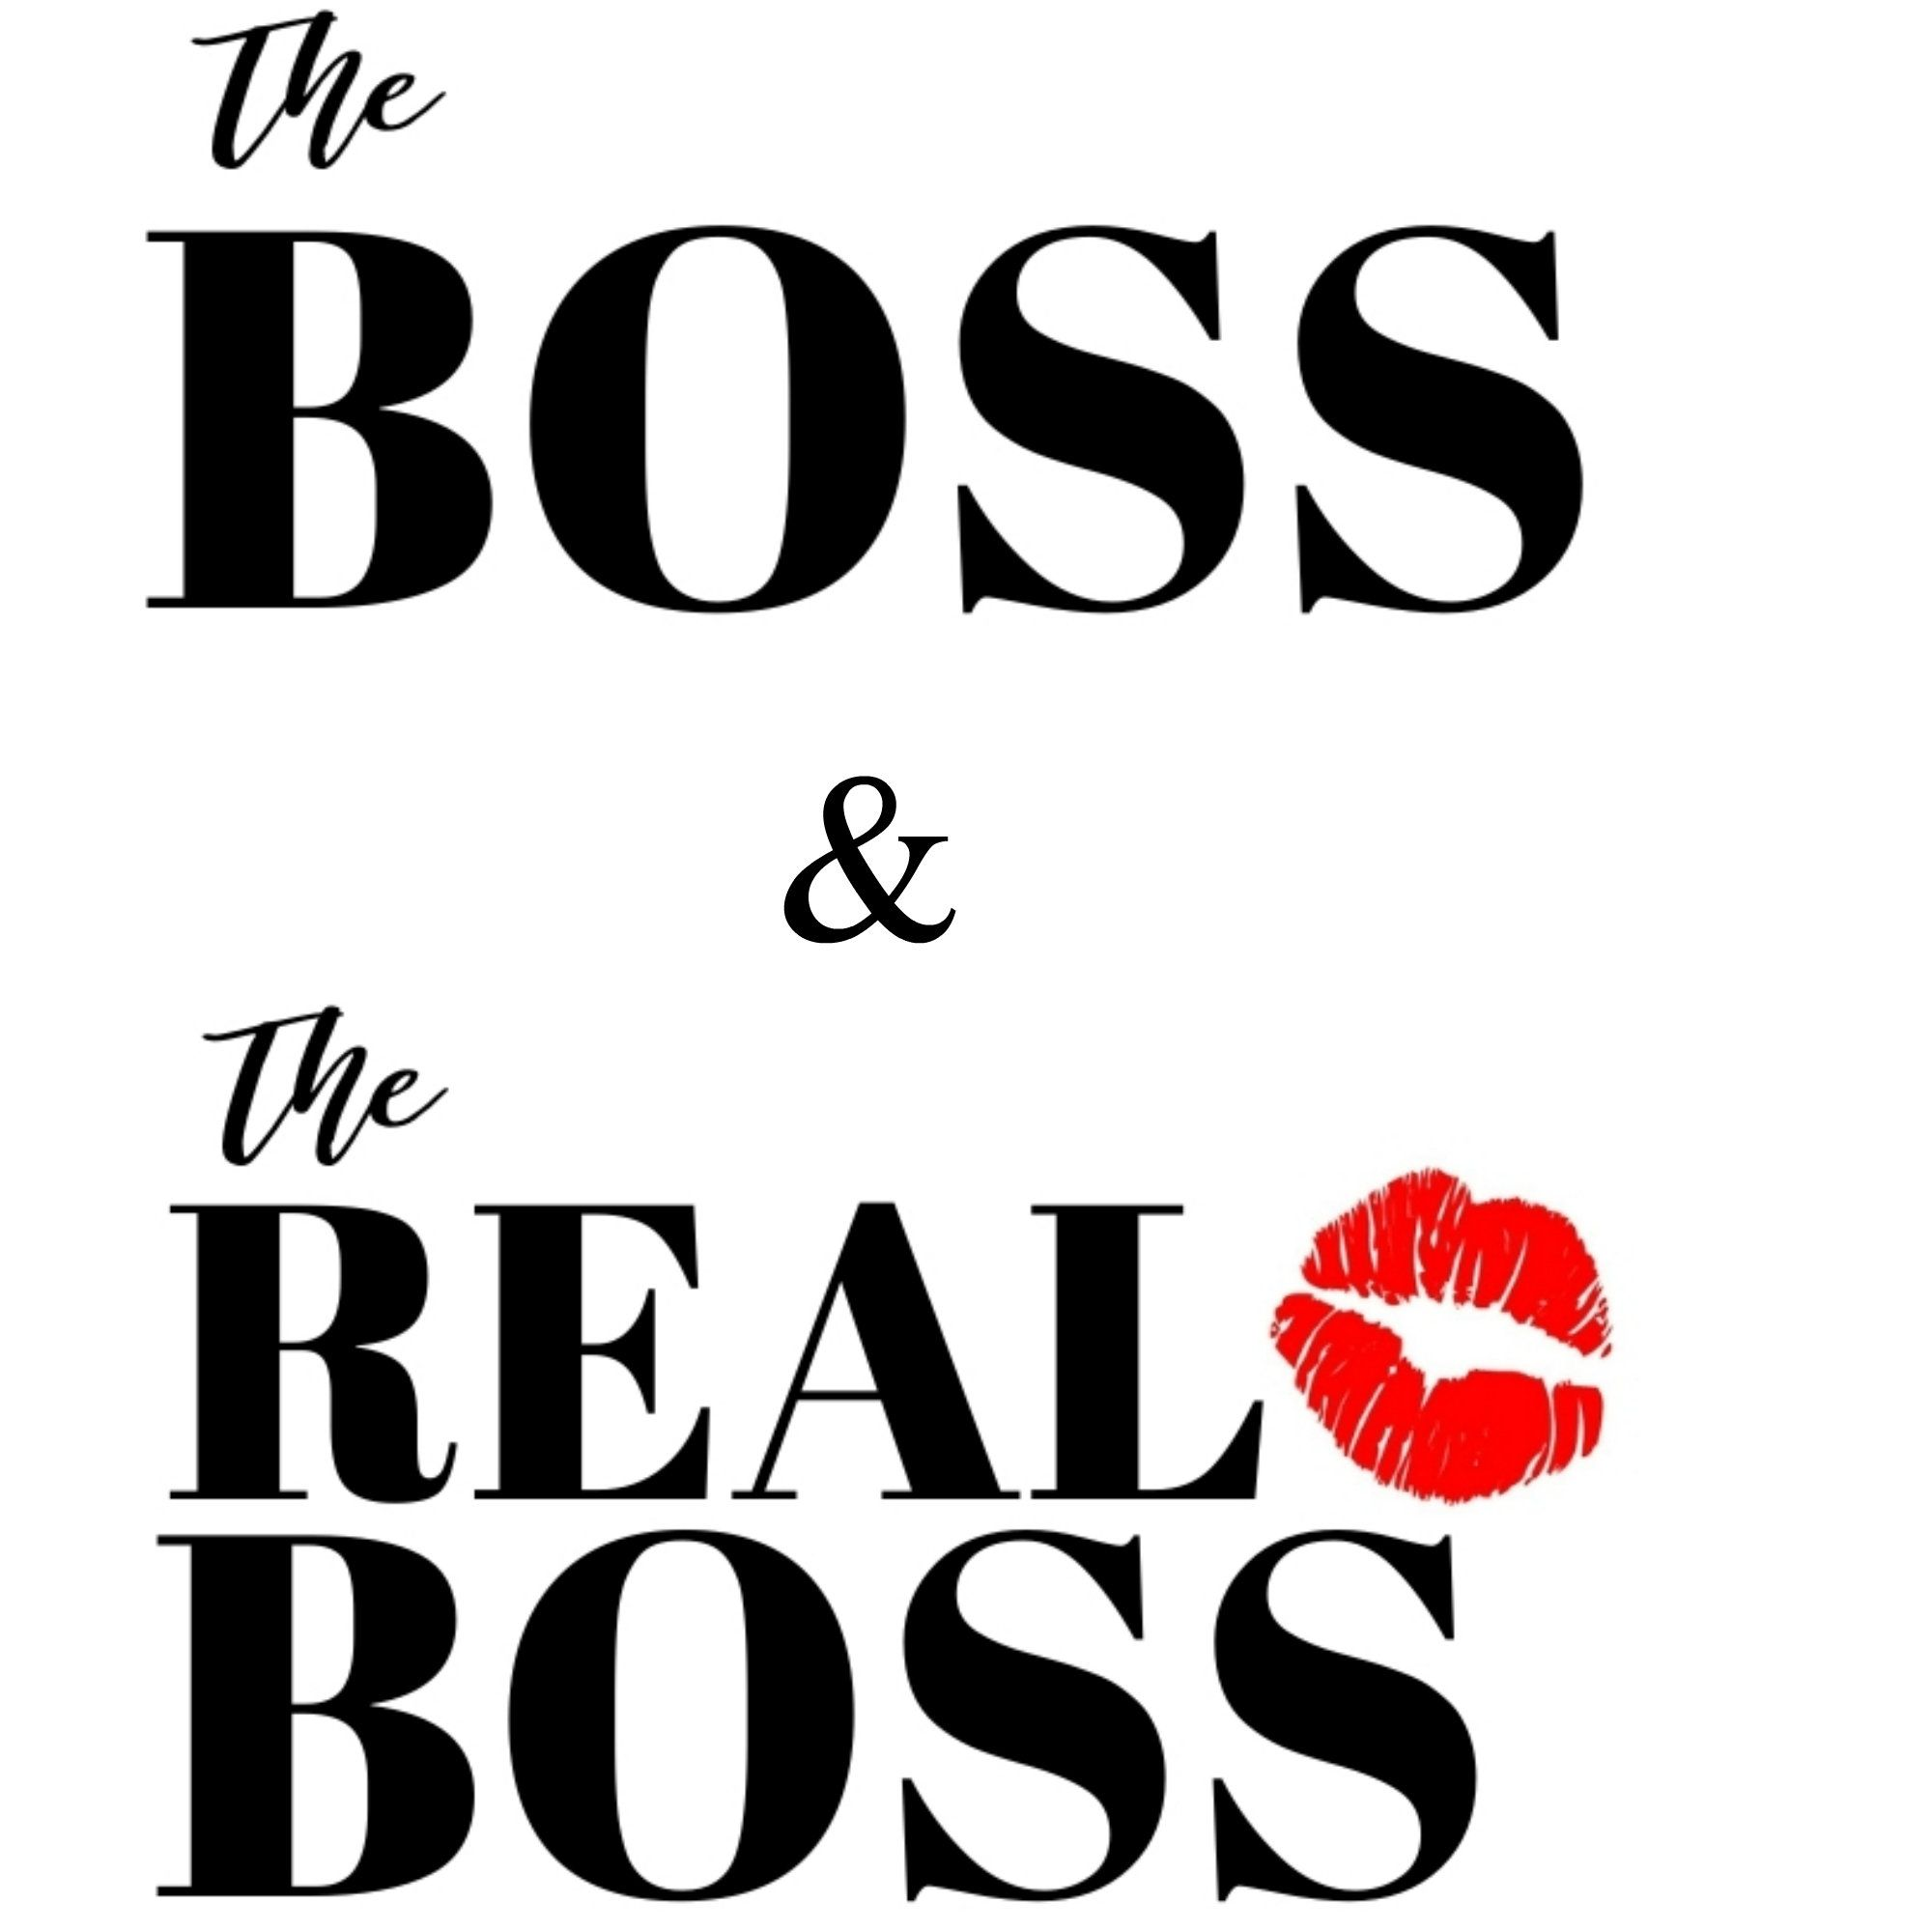 The Boss Svg The Real Boss Svg Funny Couple Svg The Boss Etsy In 2021 Boss Humor Badass Quotes Clip Art